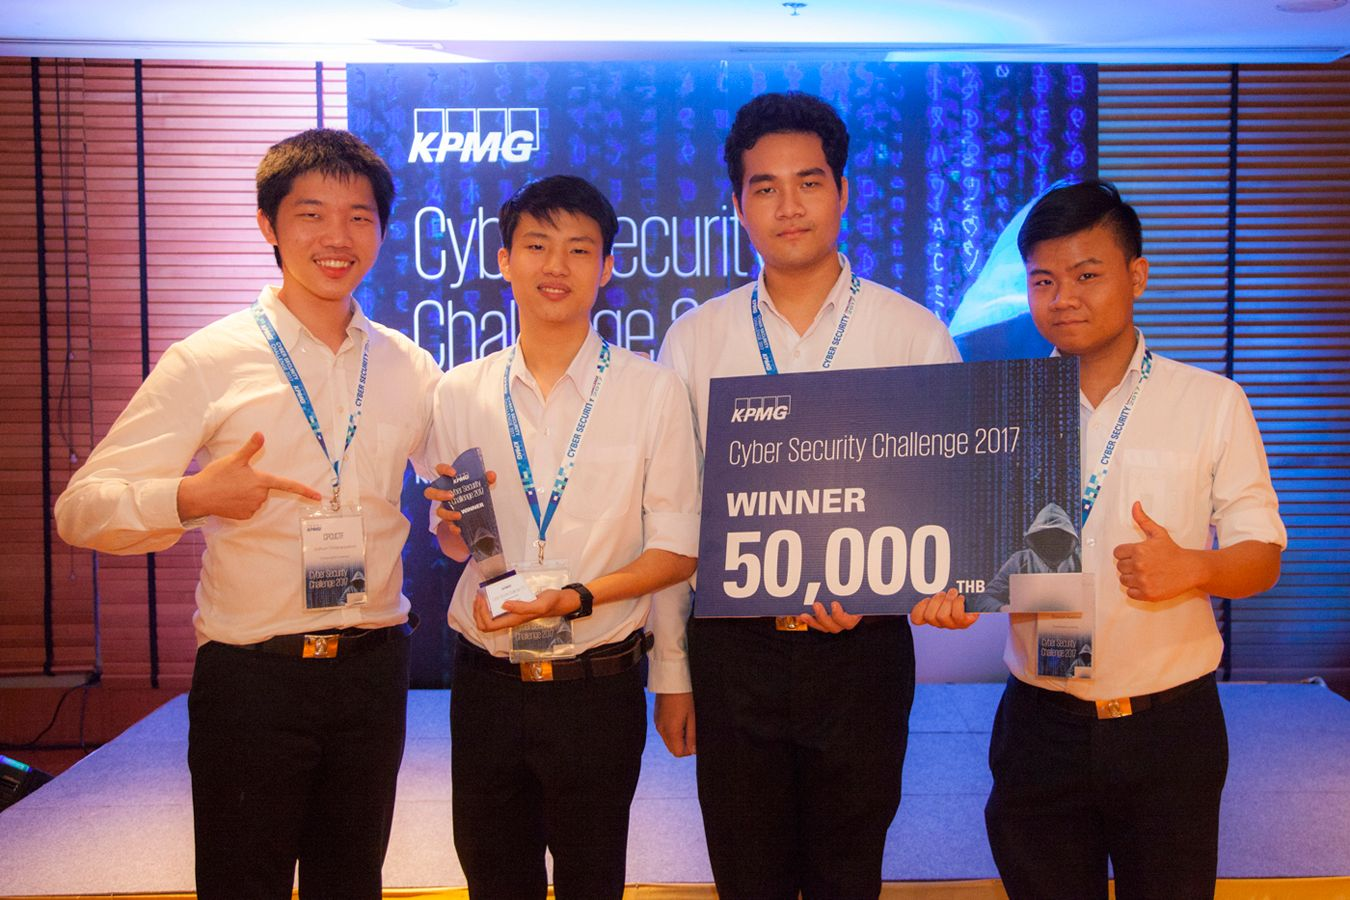 Team CPCUCTF from Chulalongkorn University secured first place.